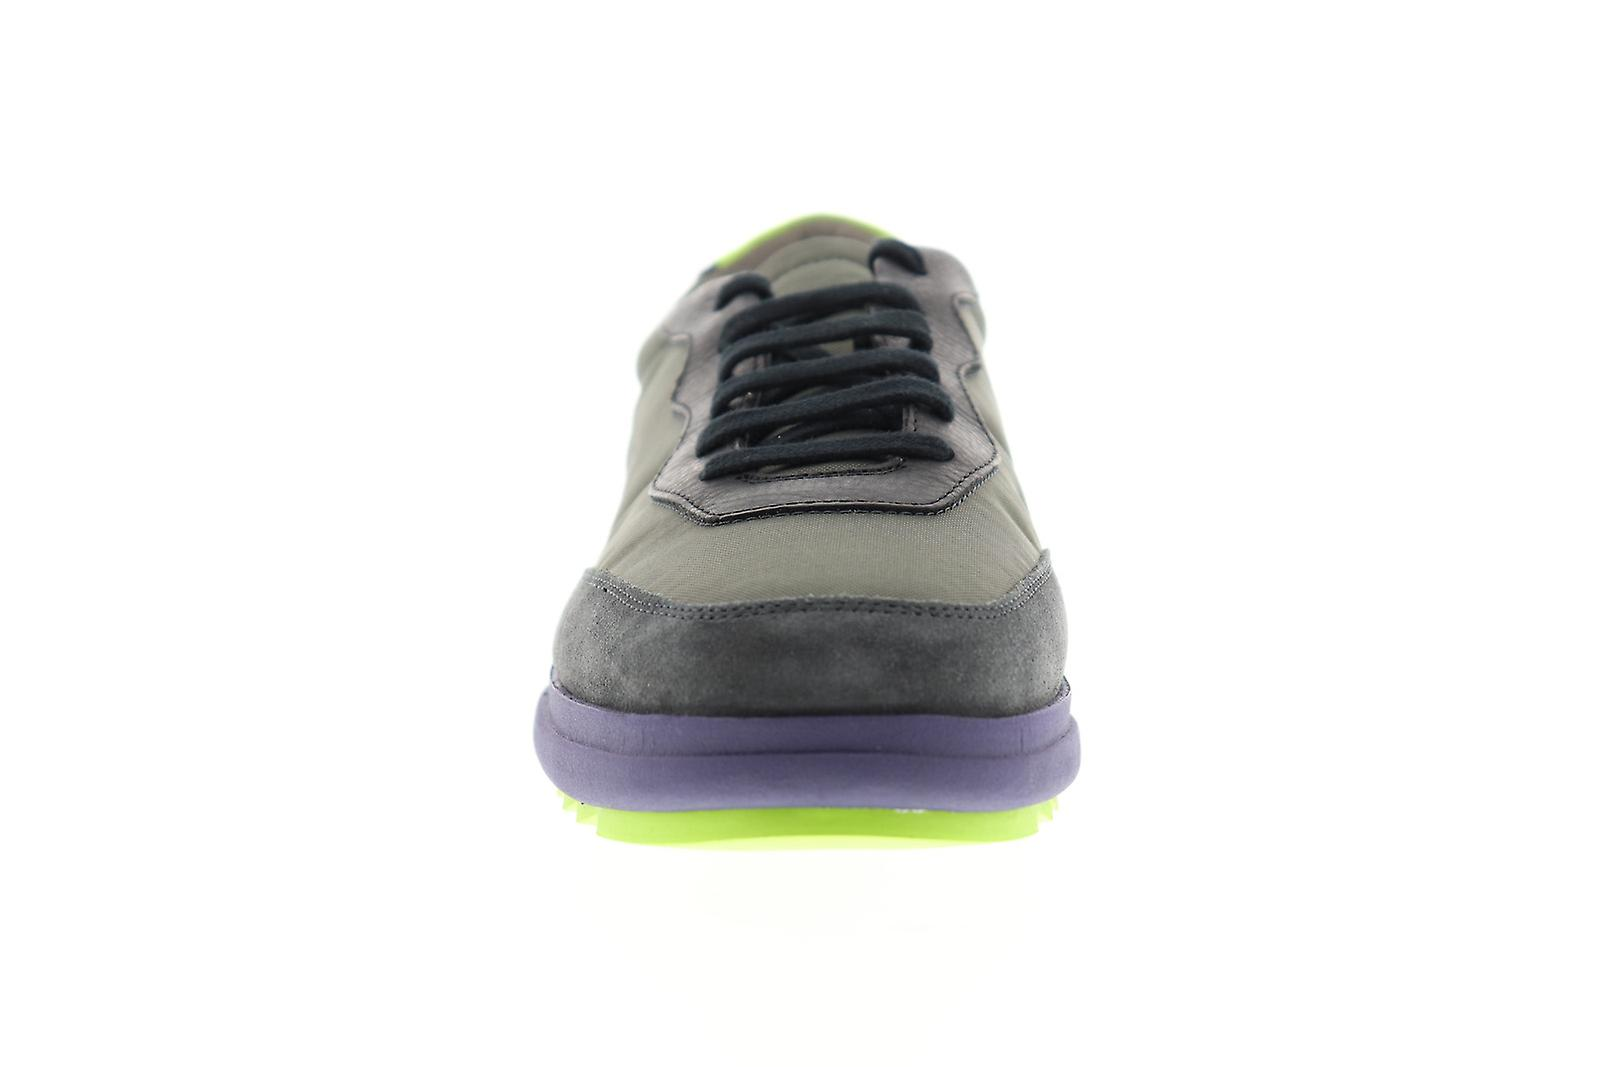 Camper Marges Mens Green Lace Up Low Top Sneakers Shoes